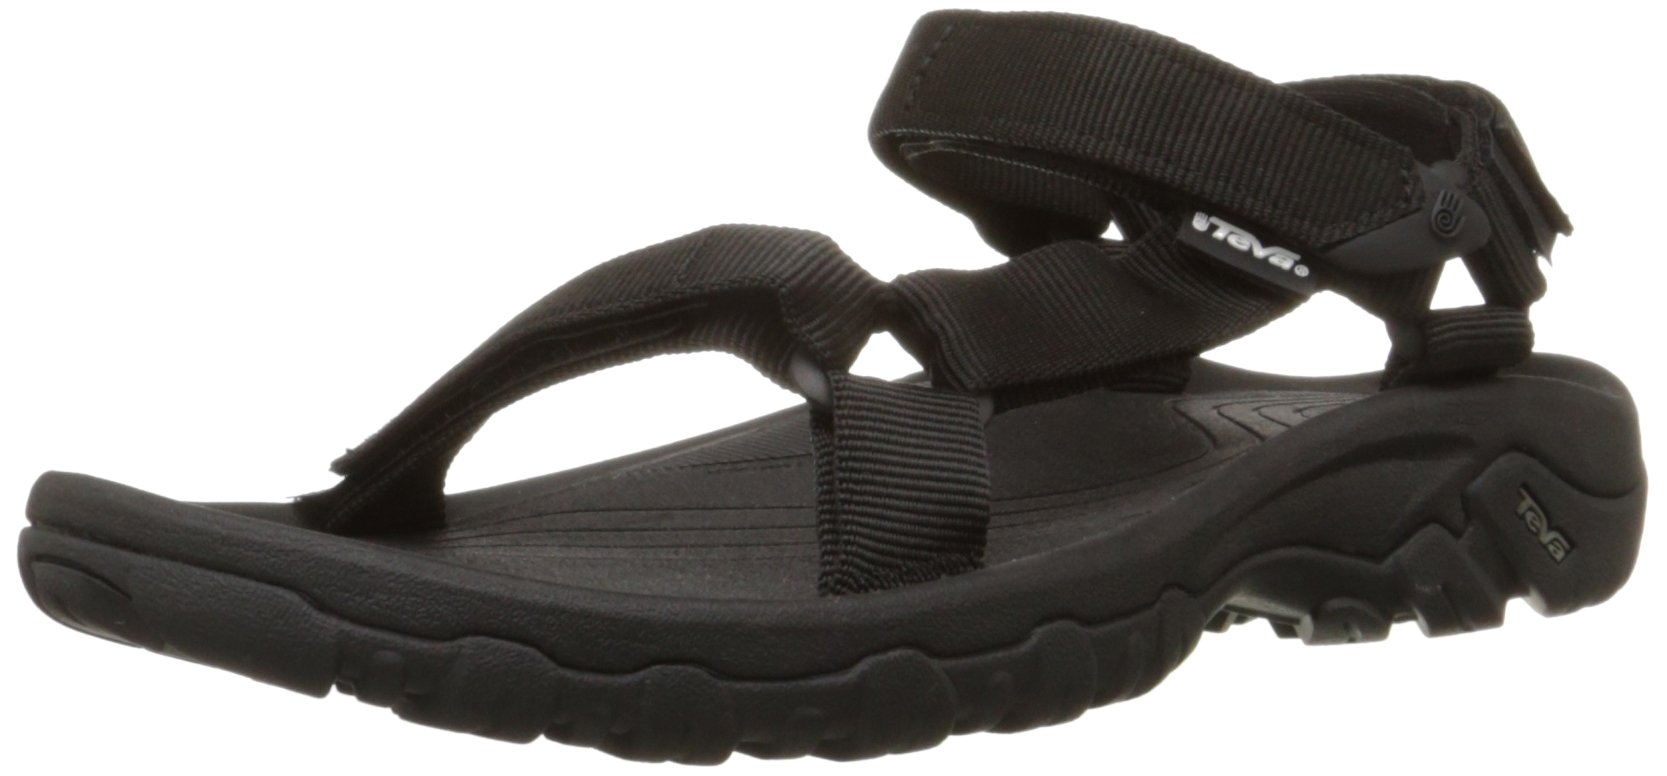 Teva Women's Hurricane XLT Sandal,Black,11 M US